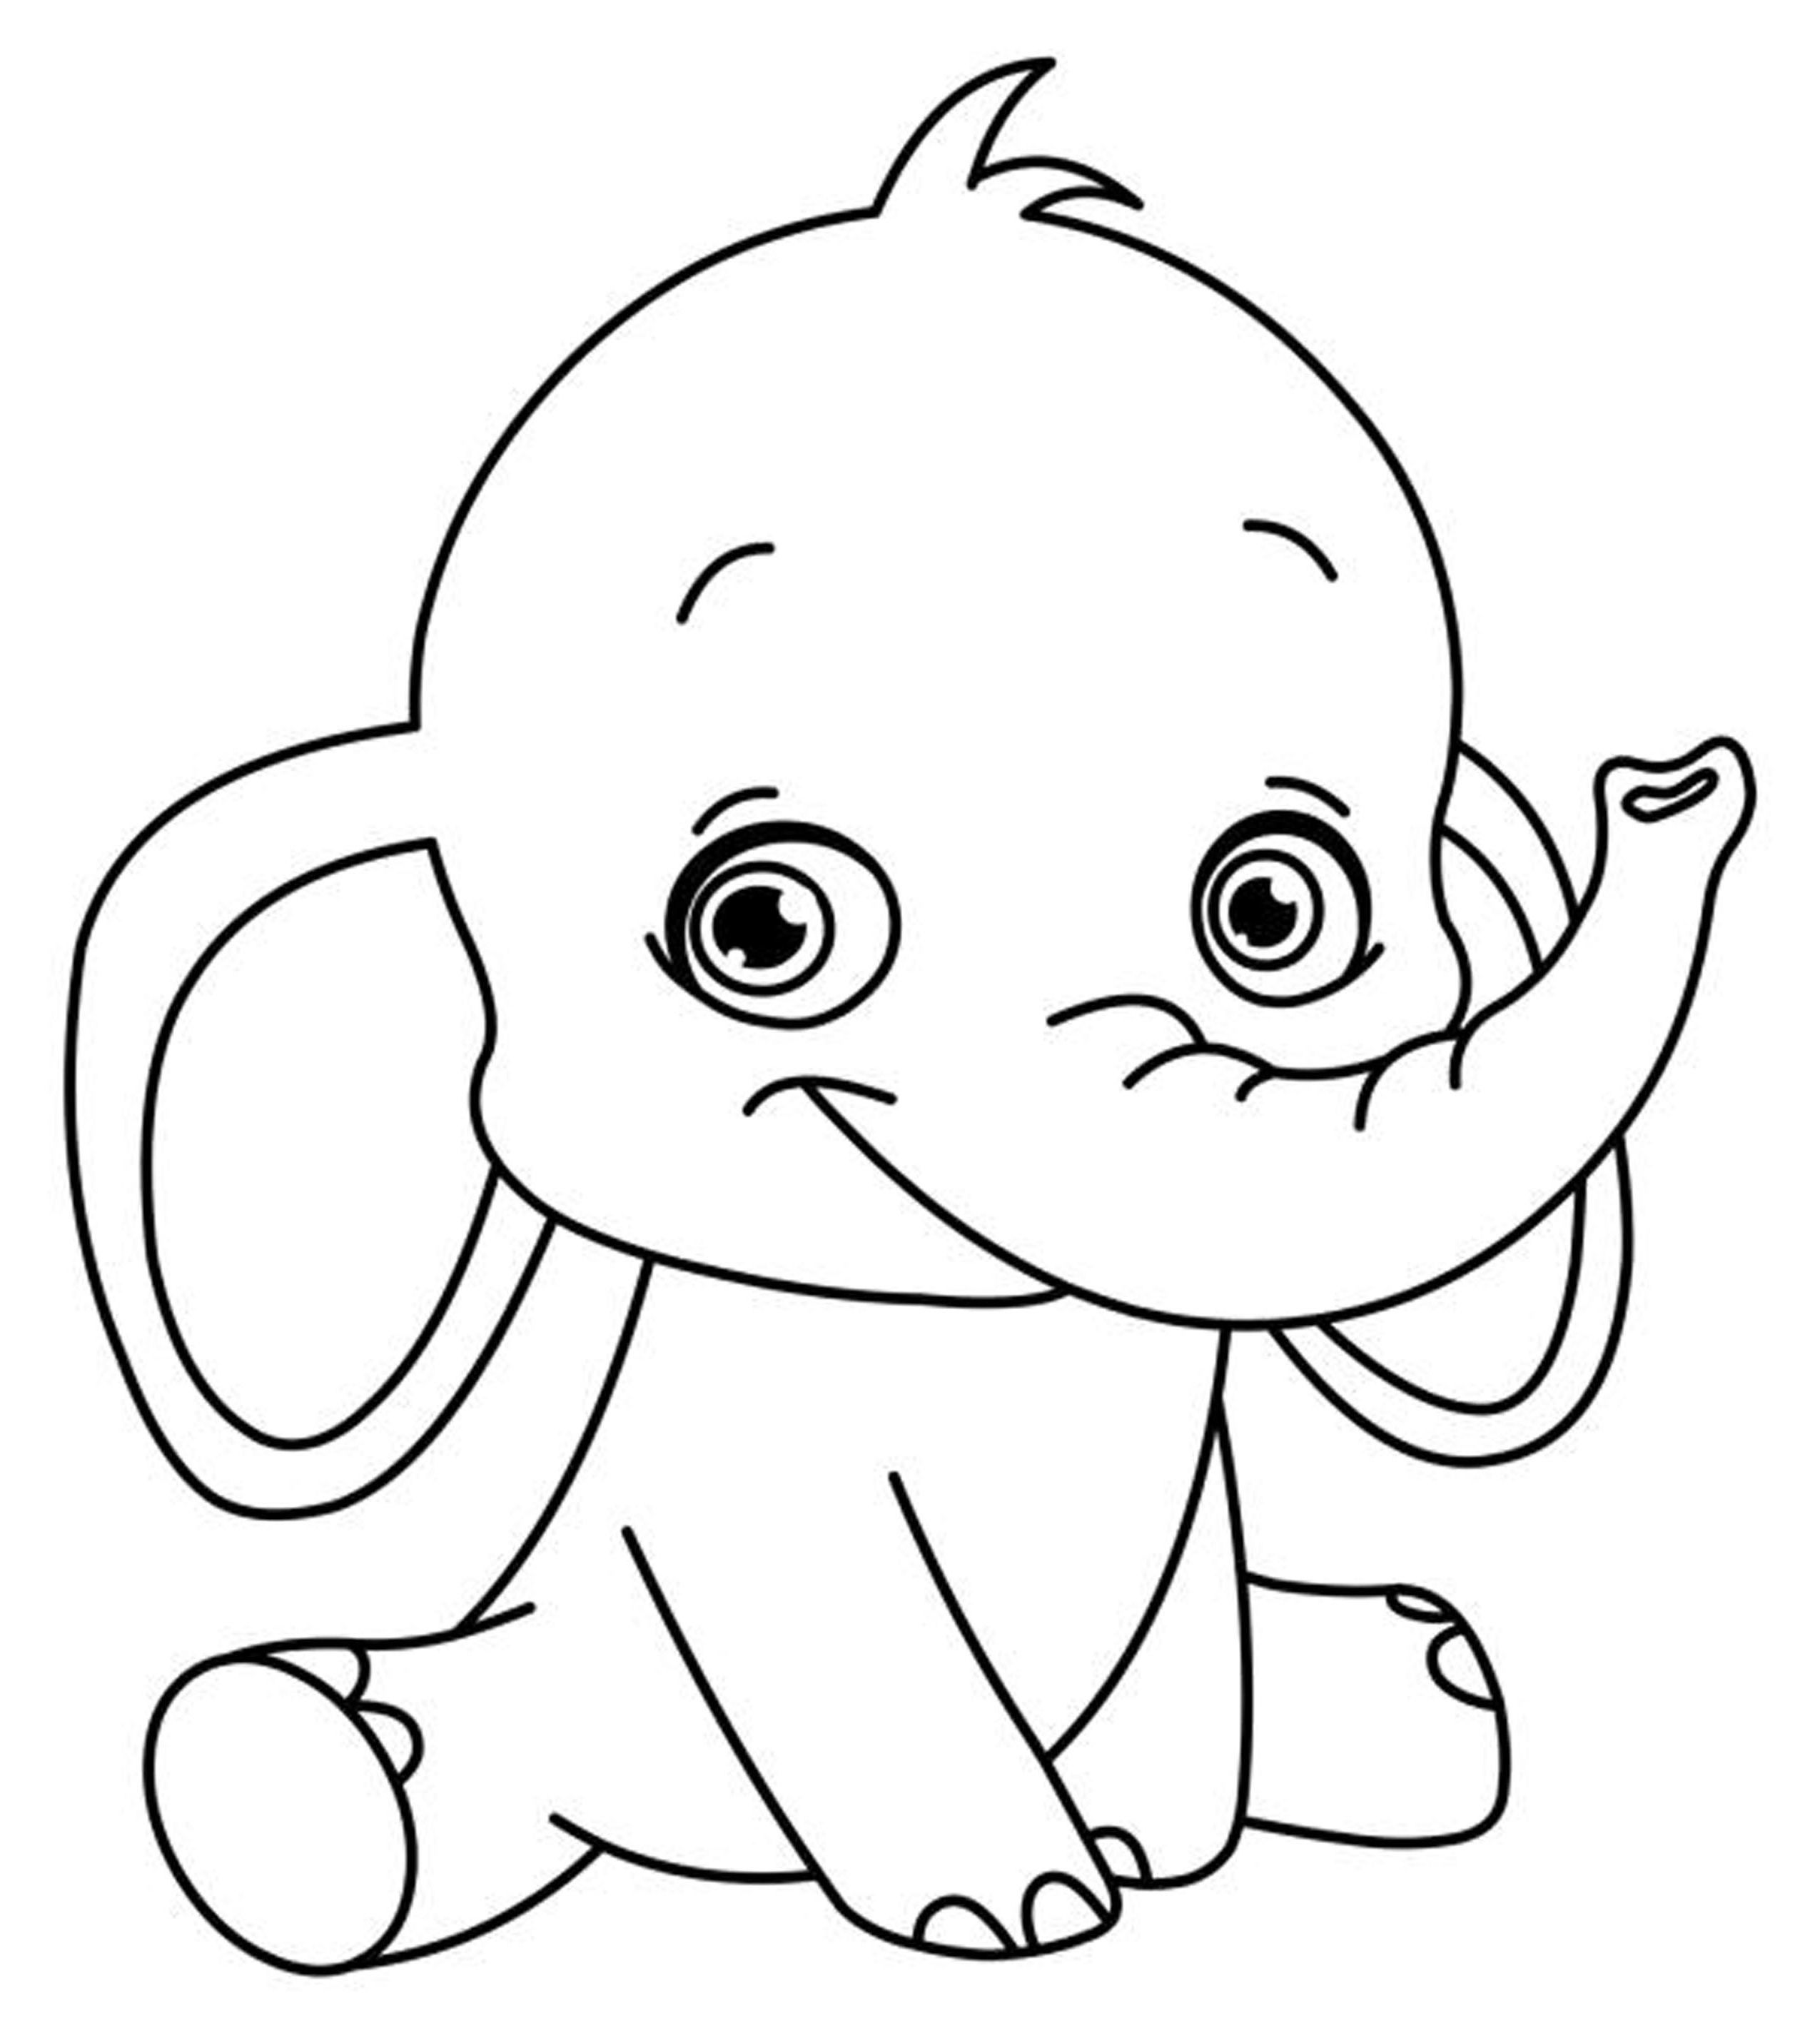 colouring in pictures for girls fun disney coloring pages coloring home pictures girls for colouring in